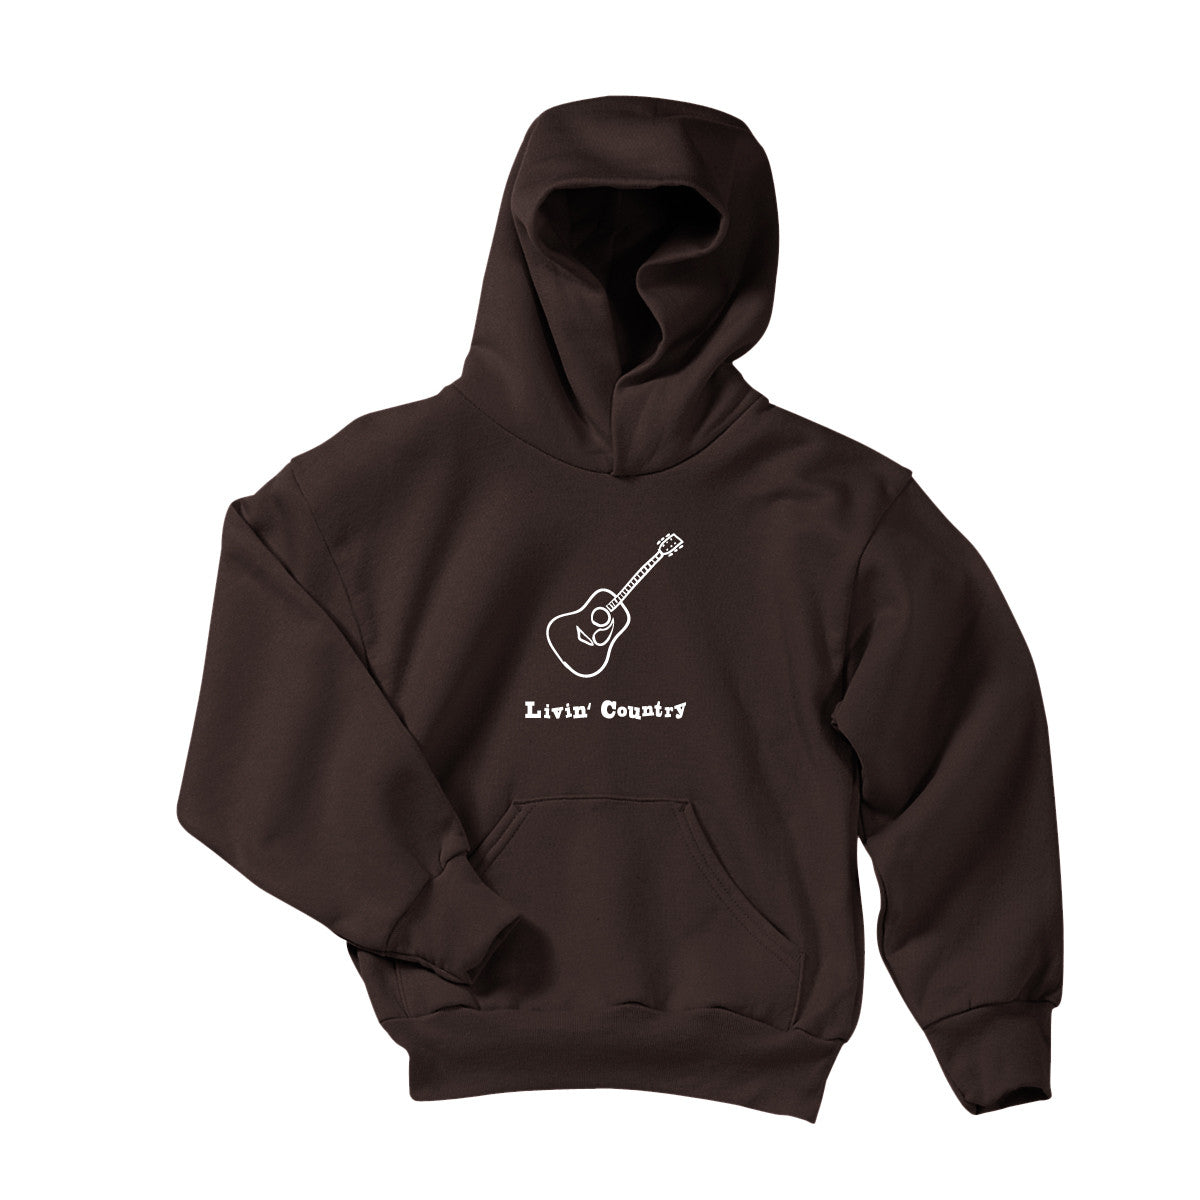 Youth Livin' Country Guitar Hoodie - Livin' Country Apparel & Accessories  - 1